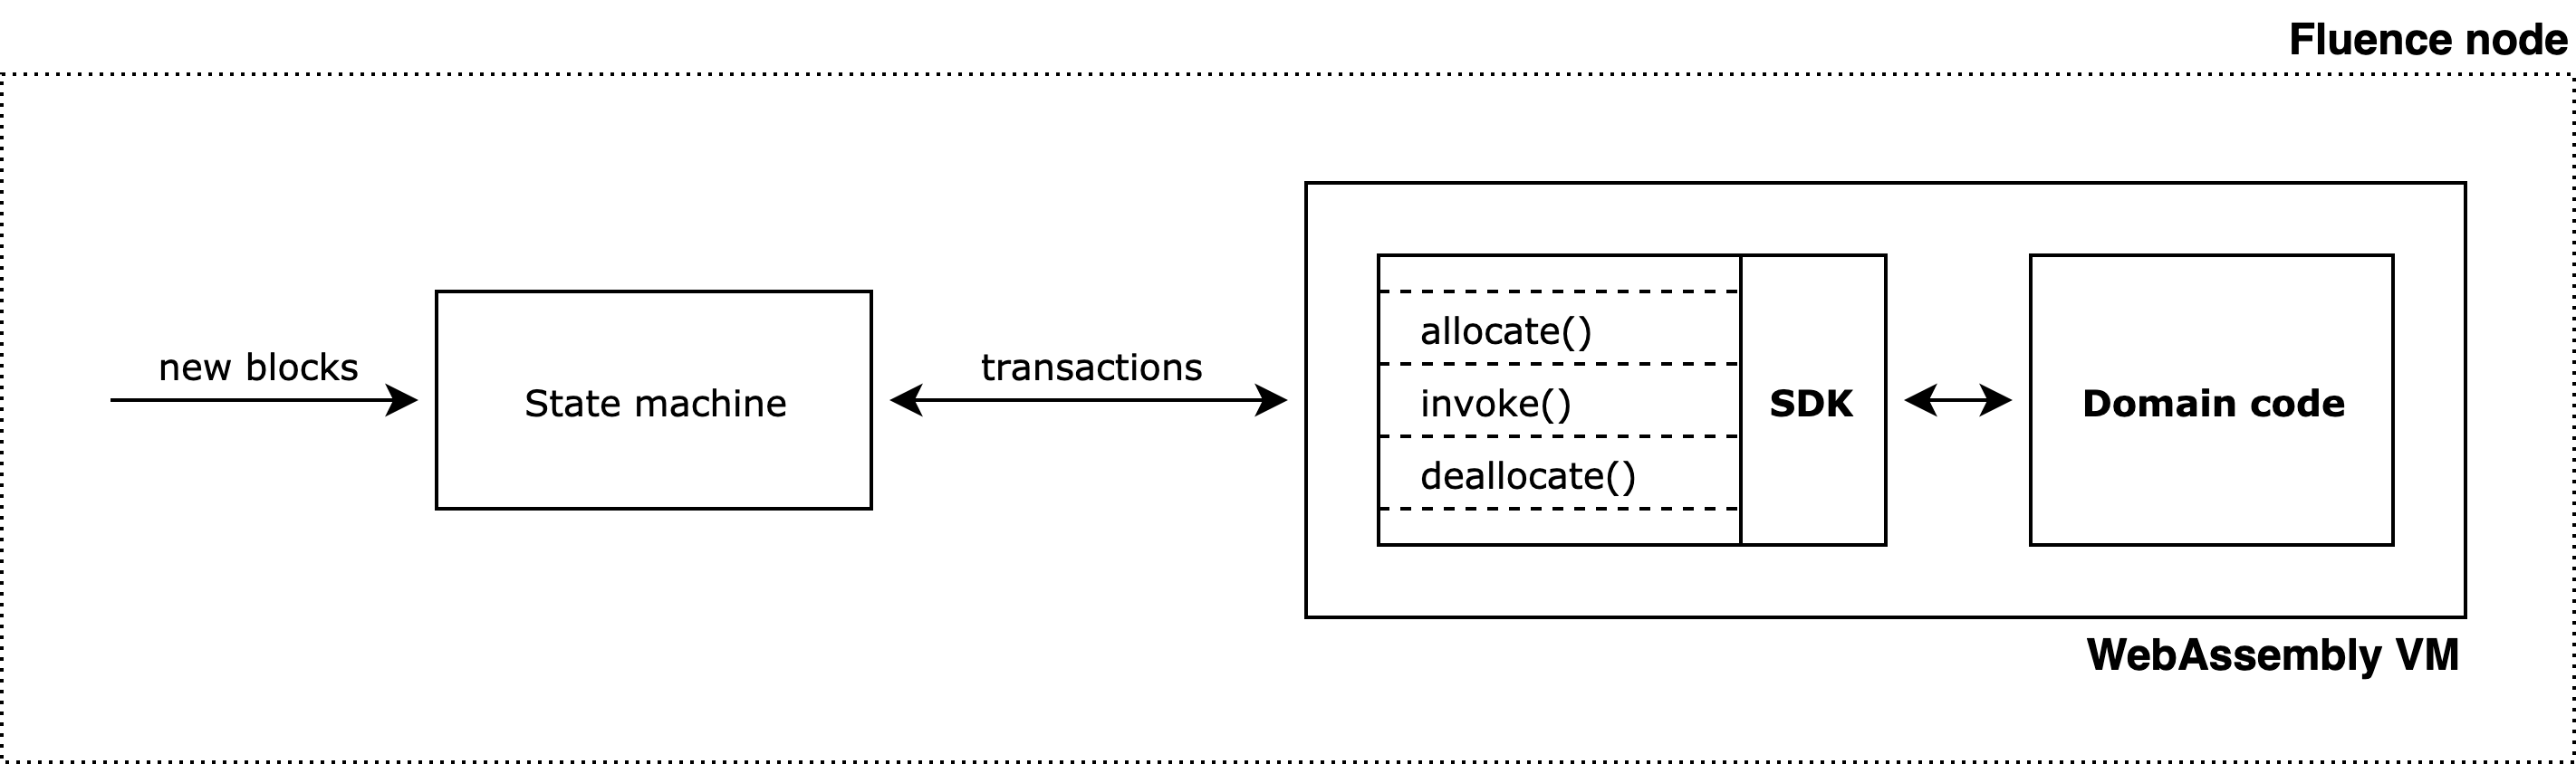 Transactions pass through the State machine to Webassembly VM inside the Fluence node